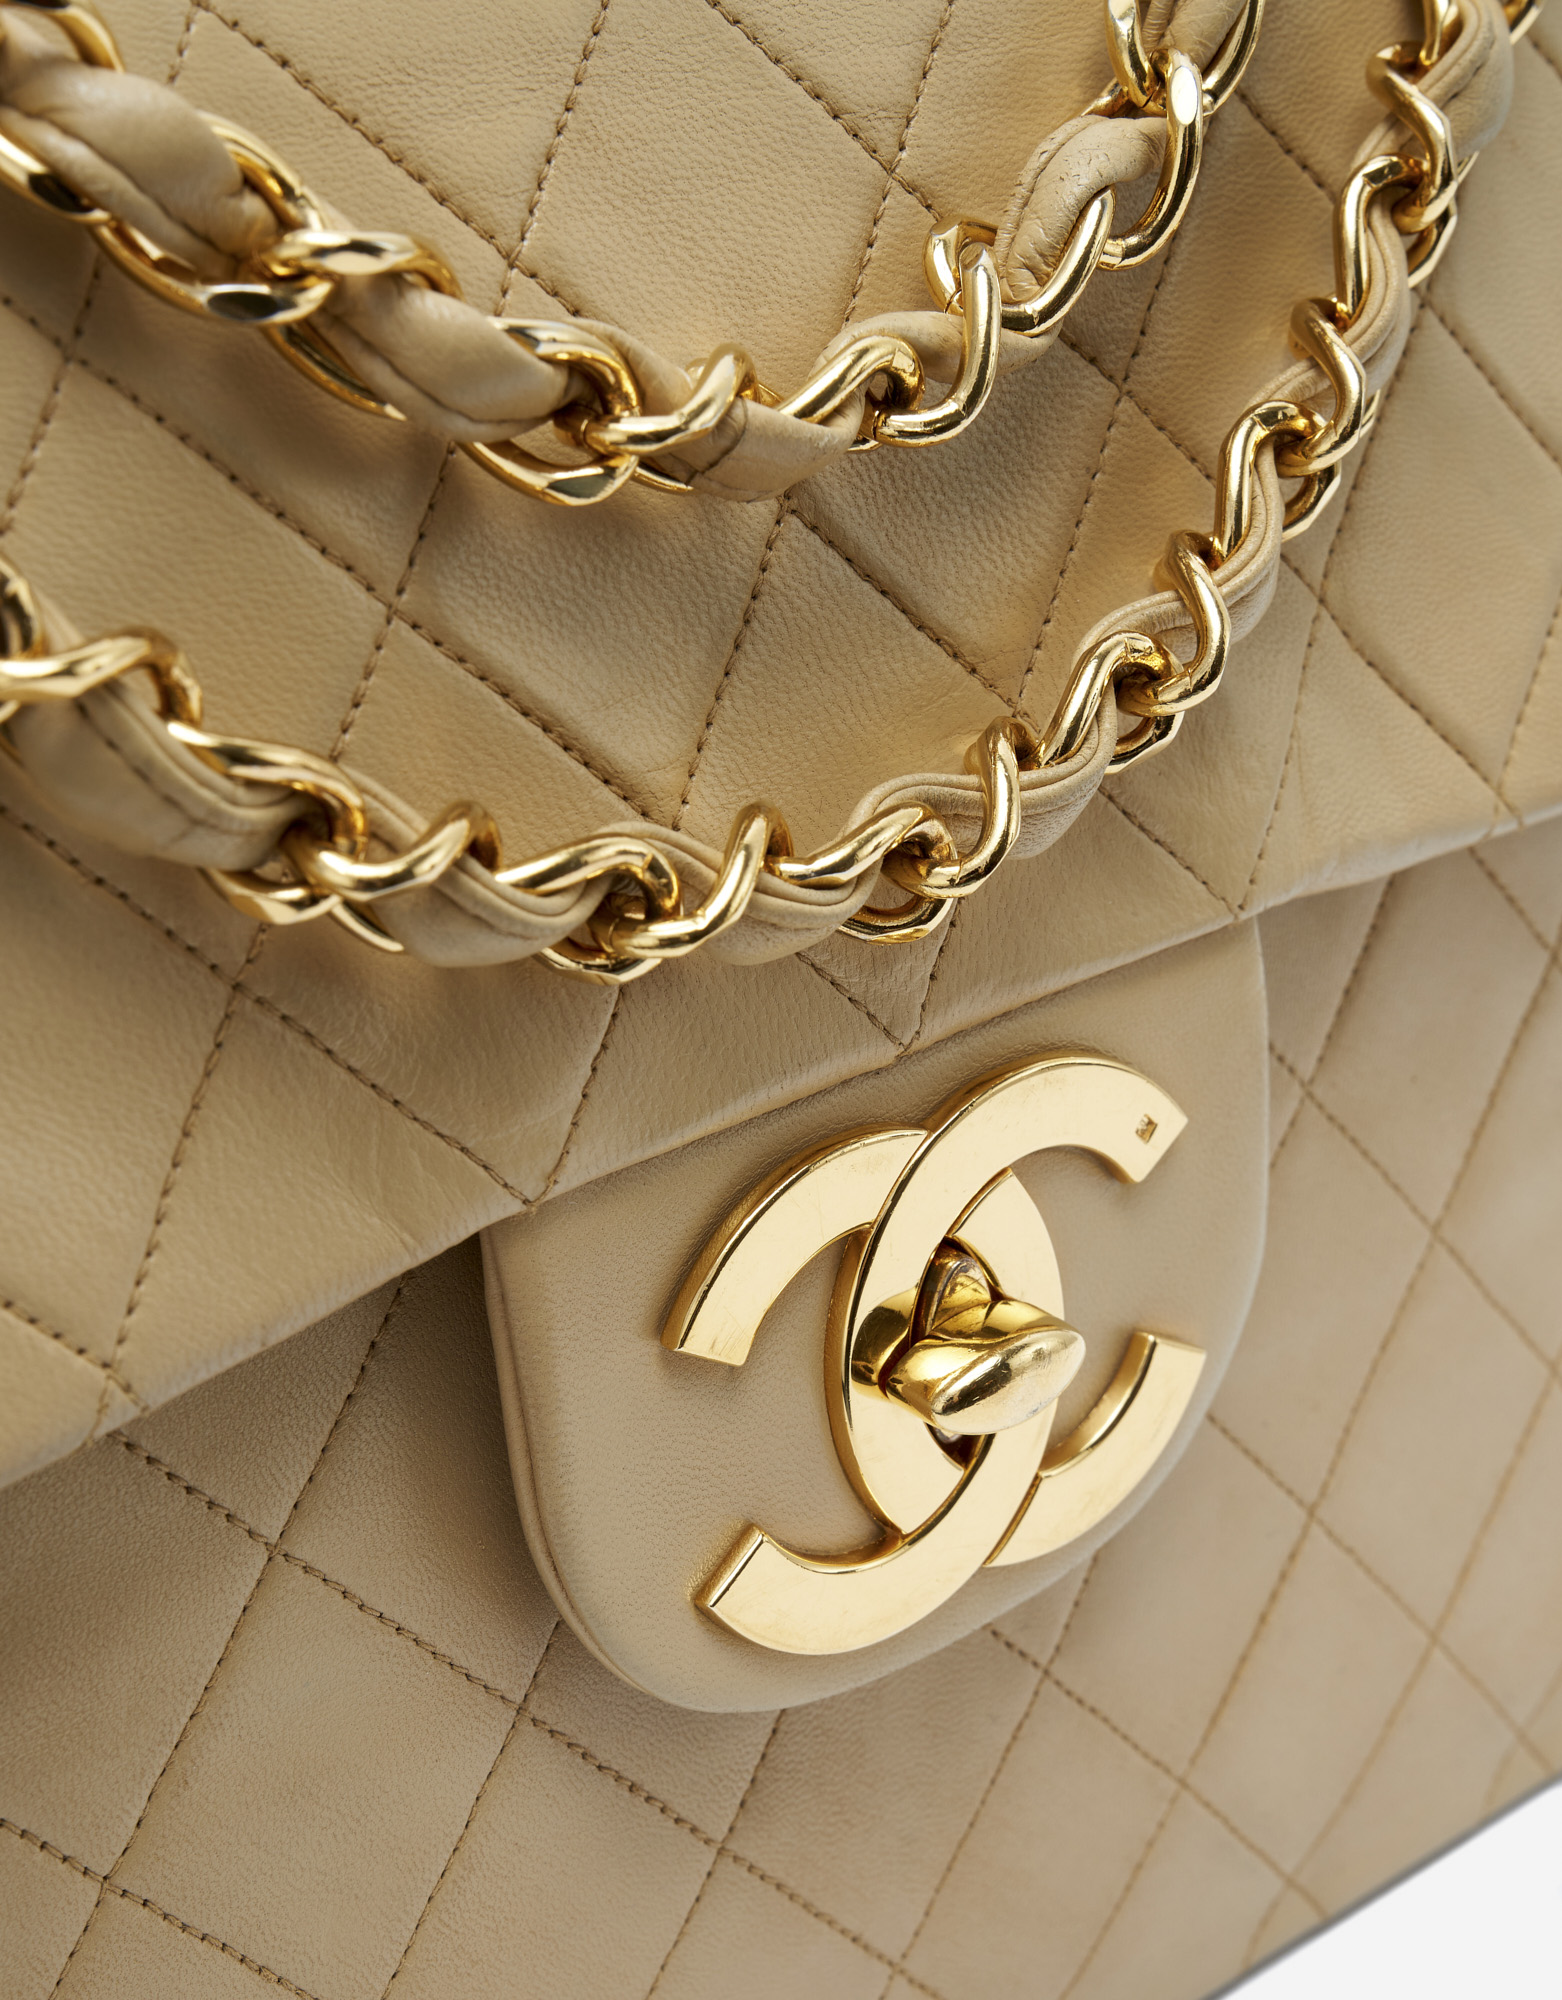 Chanel Timeless Maxi Beige